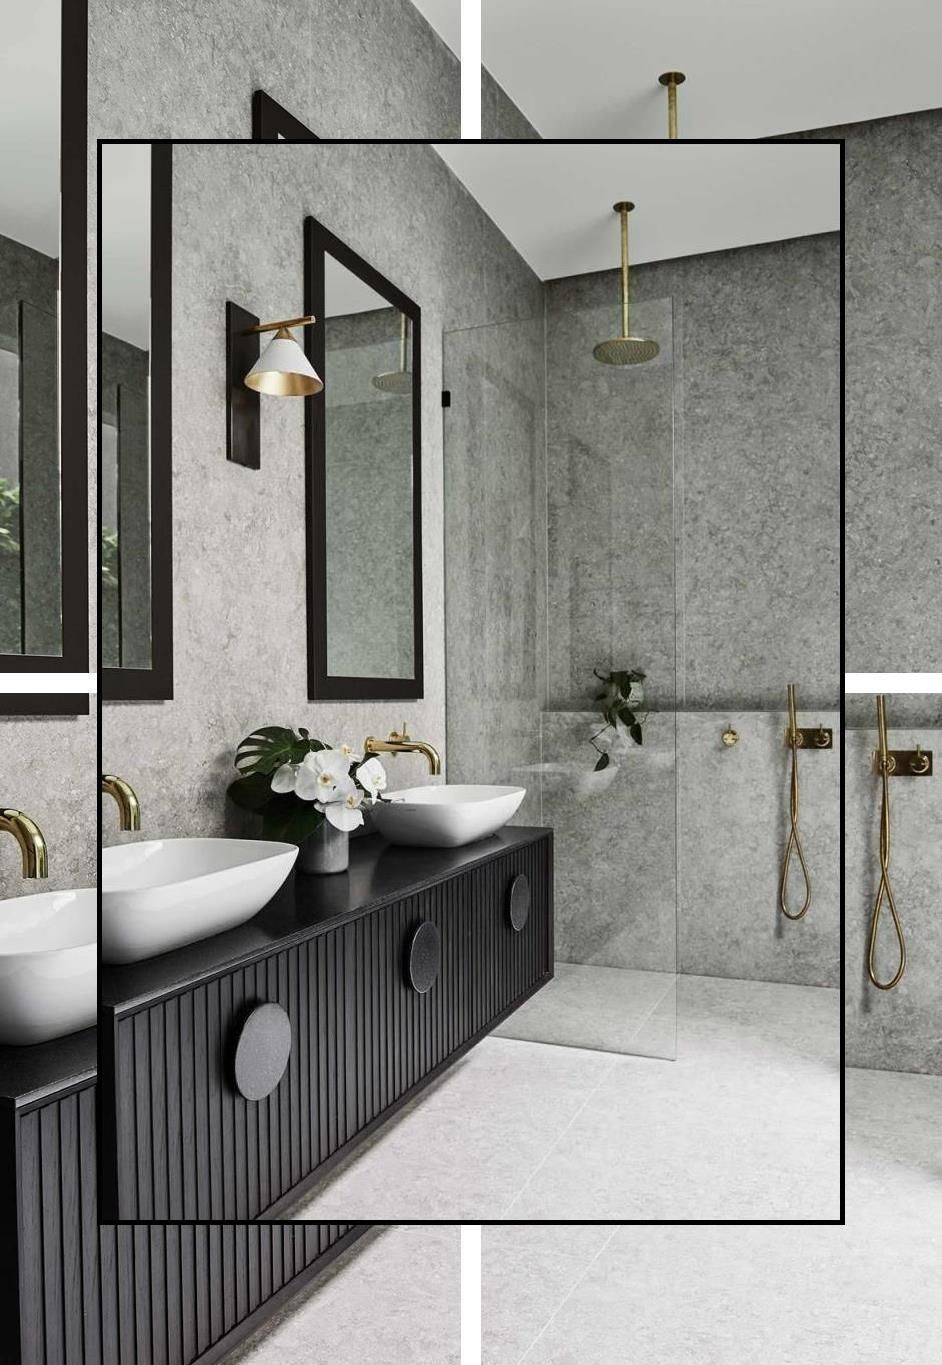 Bathroom Theme Sets Bathroom Ornaments Accessories Crackle Glass Bathroom Set In 2020 Stone Tile Bathroom Bathroom Tile Designs Bathroom Decor